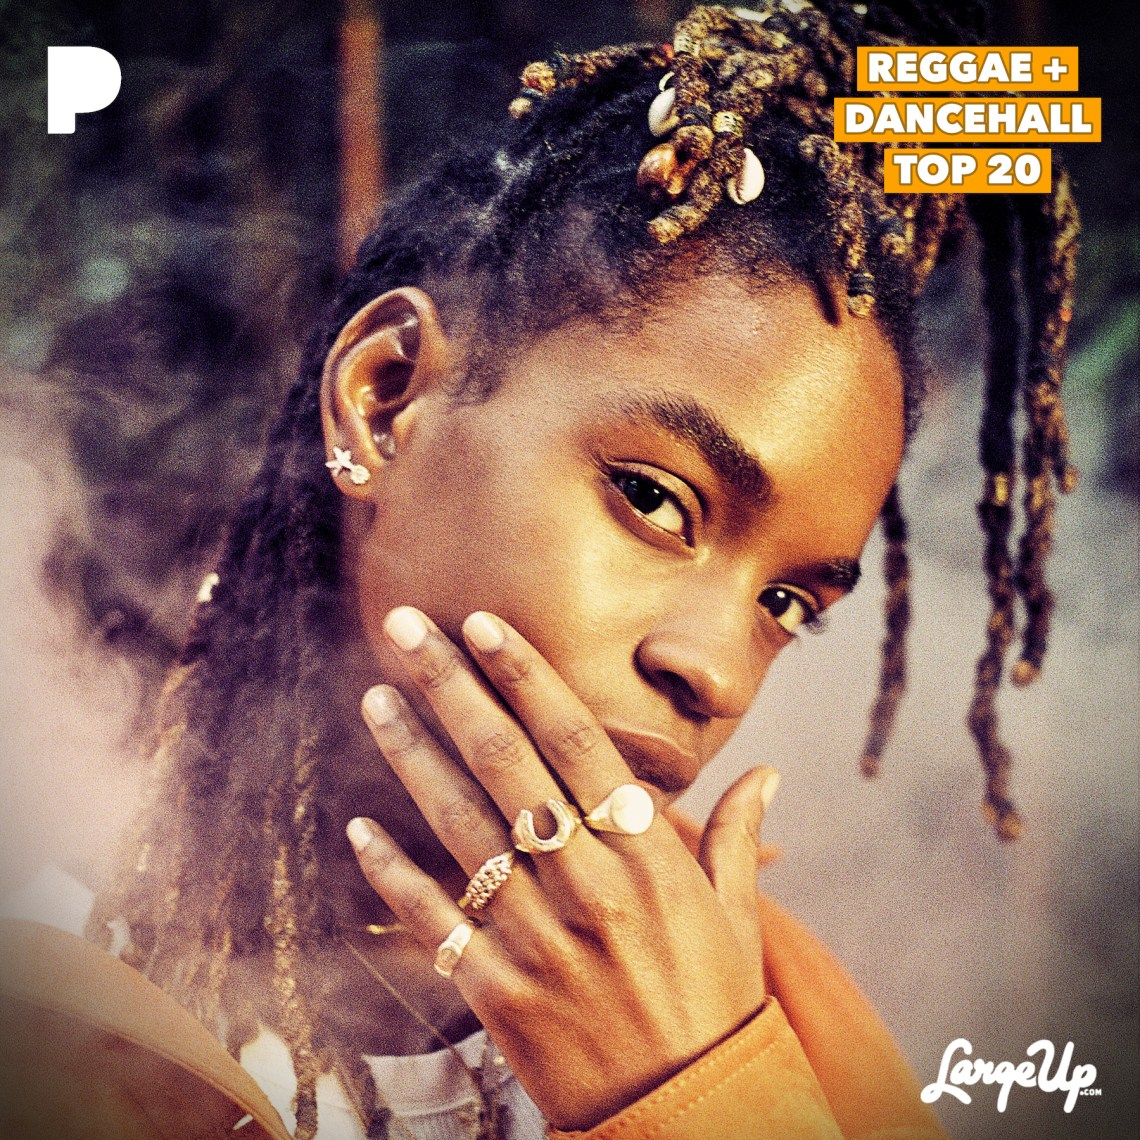 LargeUp x Pandora's 2020 Reggae/Dancehall Countdown featuring Koffee